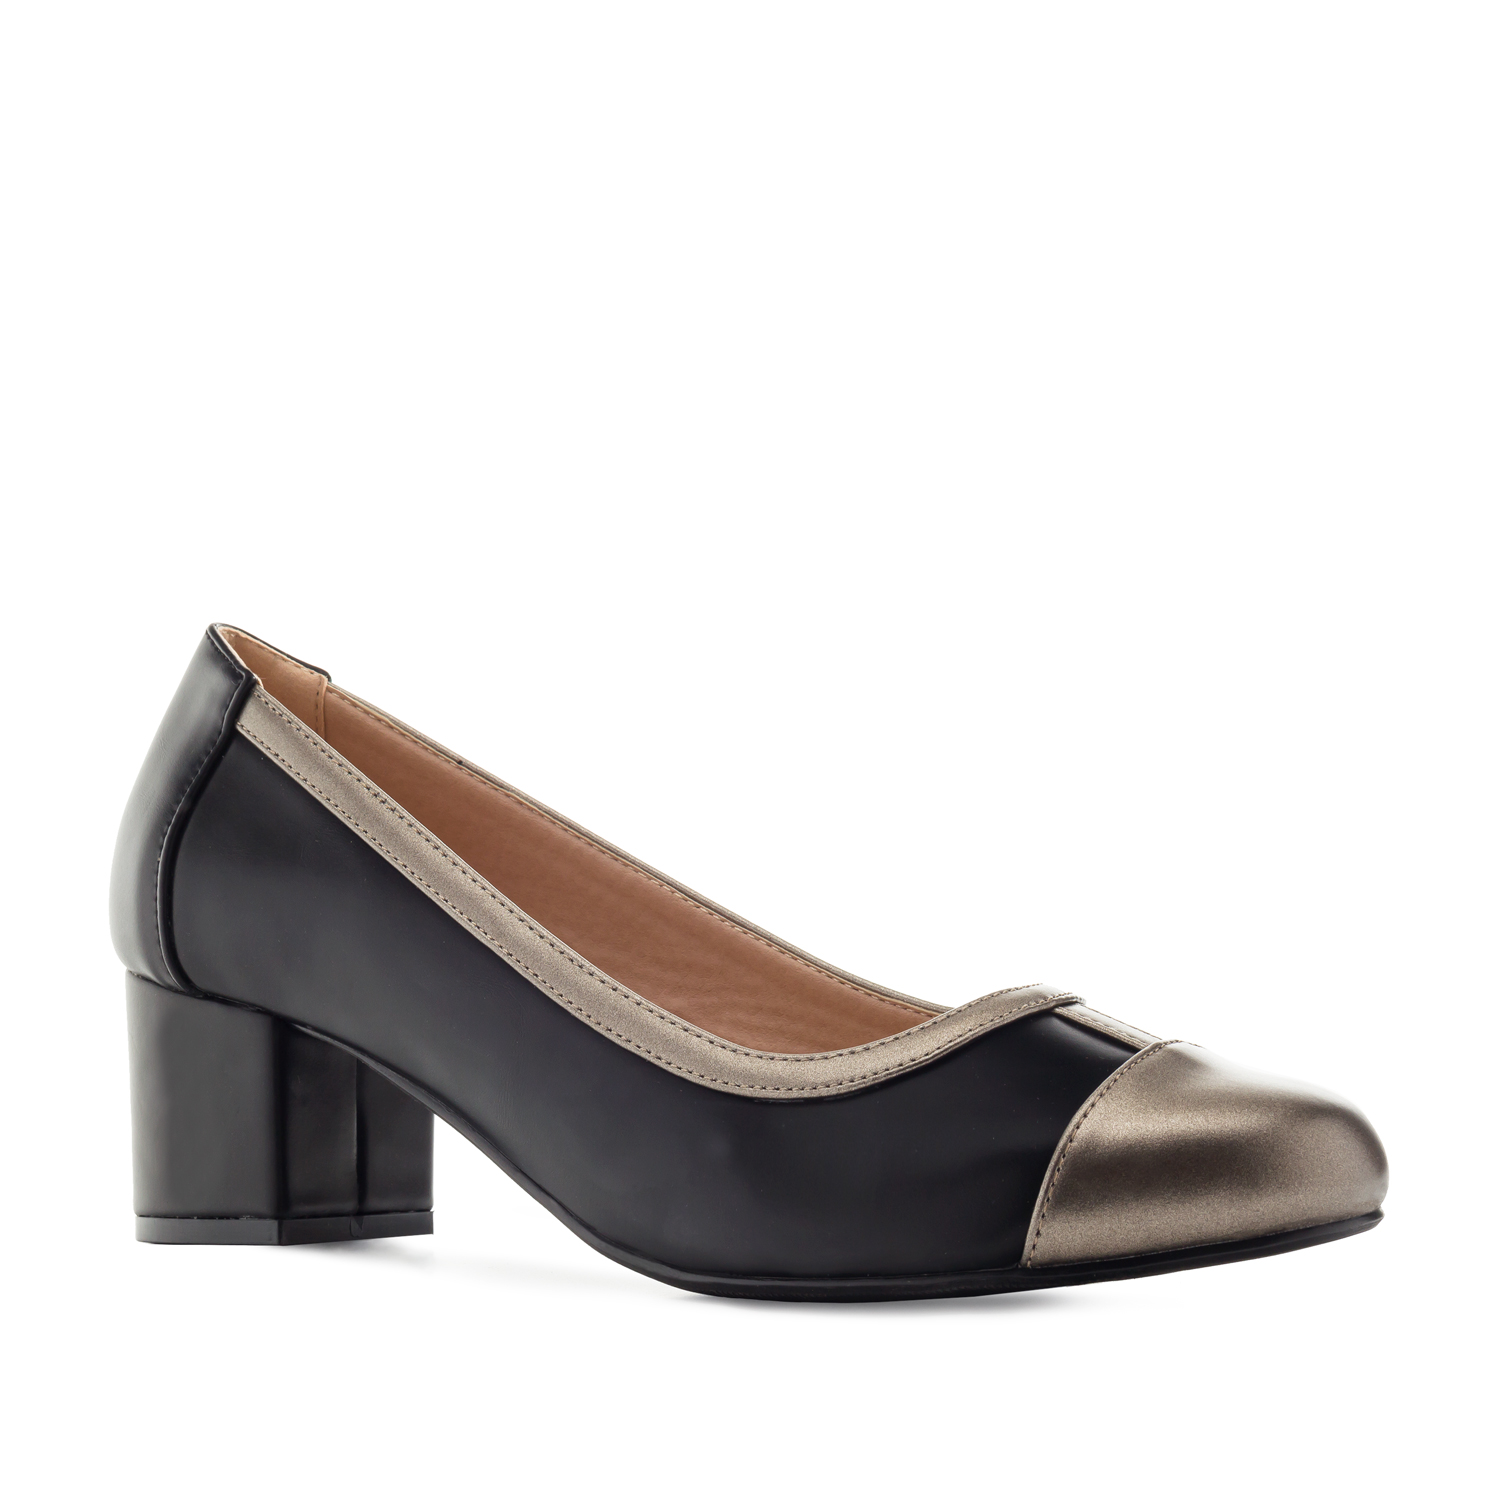 Toe-Cap Heeled Shoes in Black faux Leather